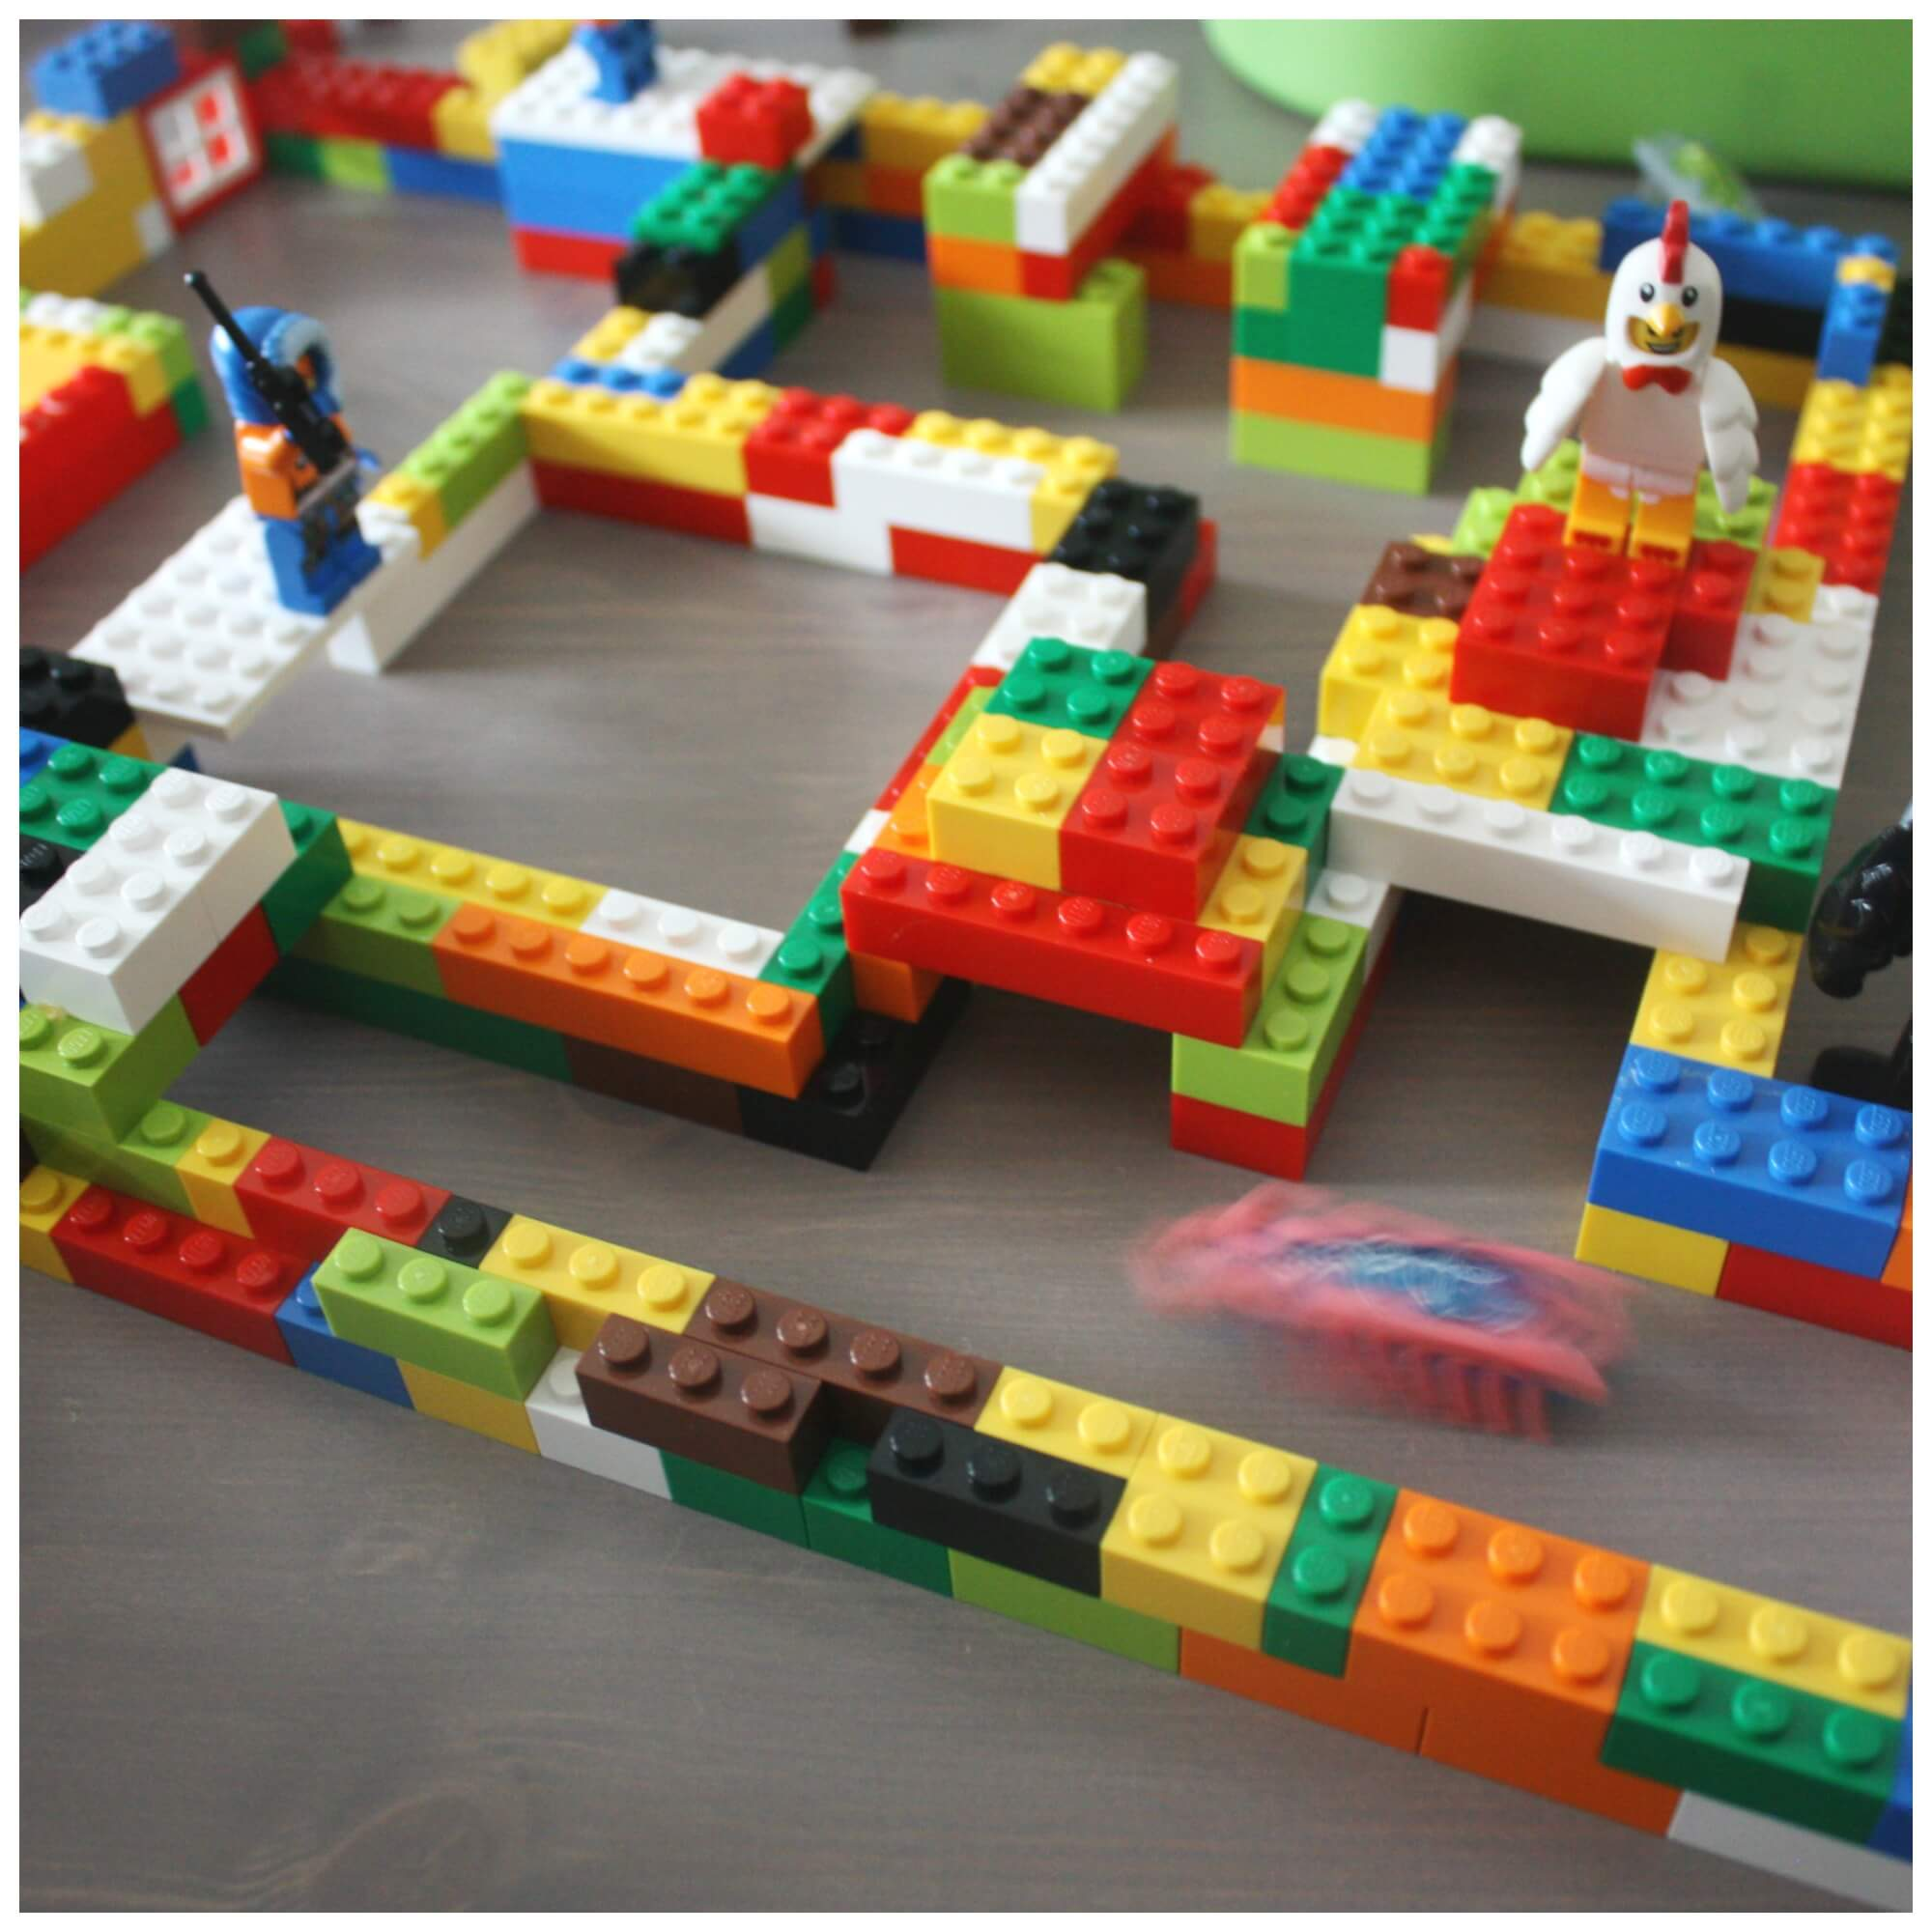 Hex Bugs Lego Habitat Building Ideas For Kids